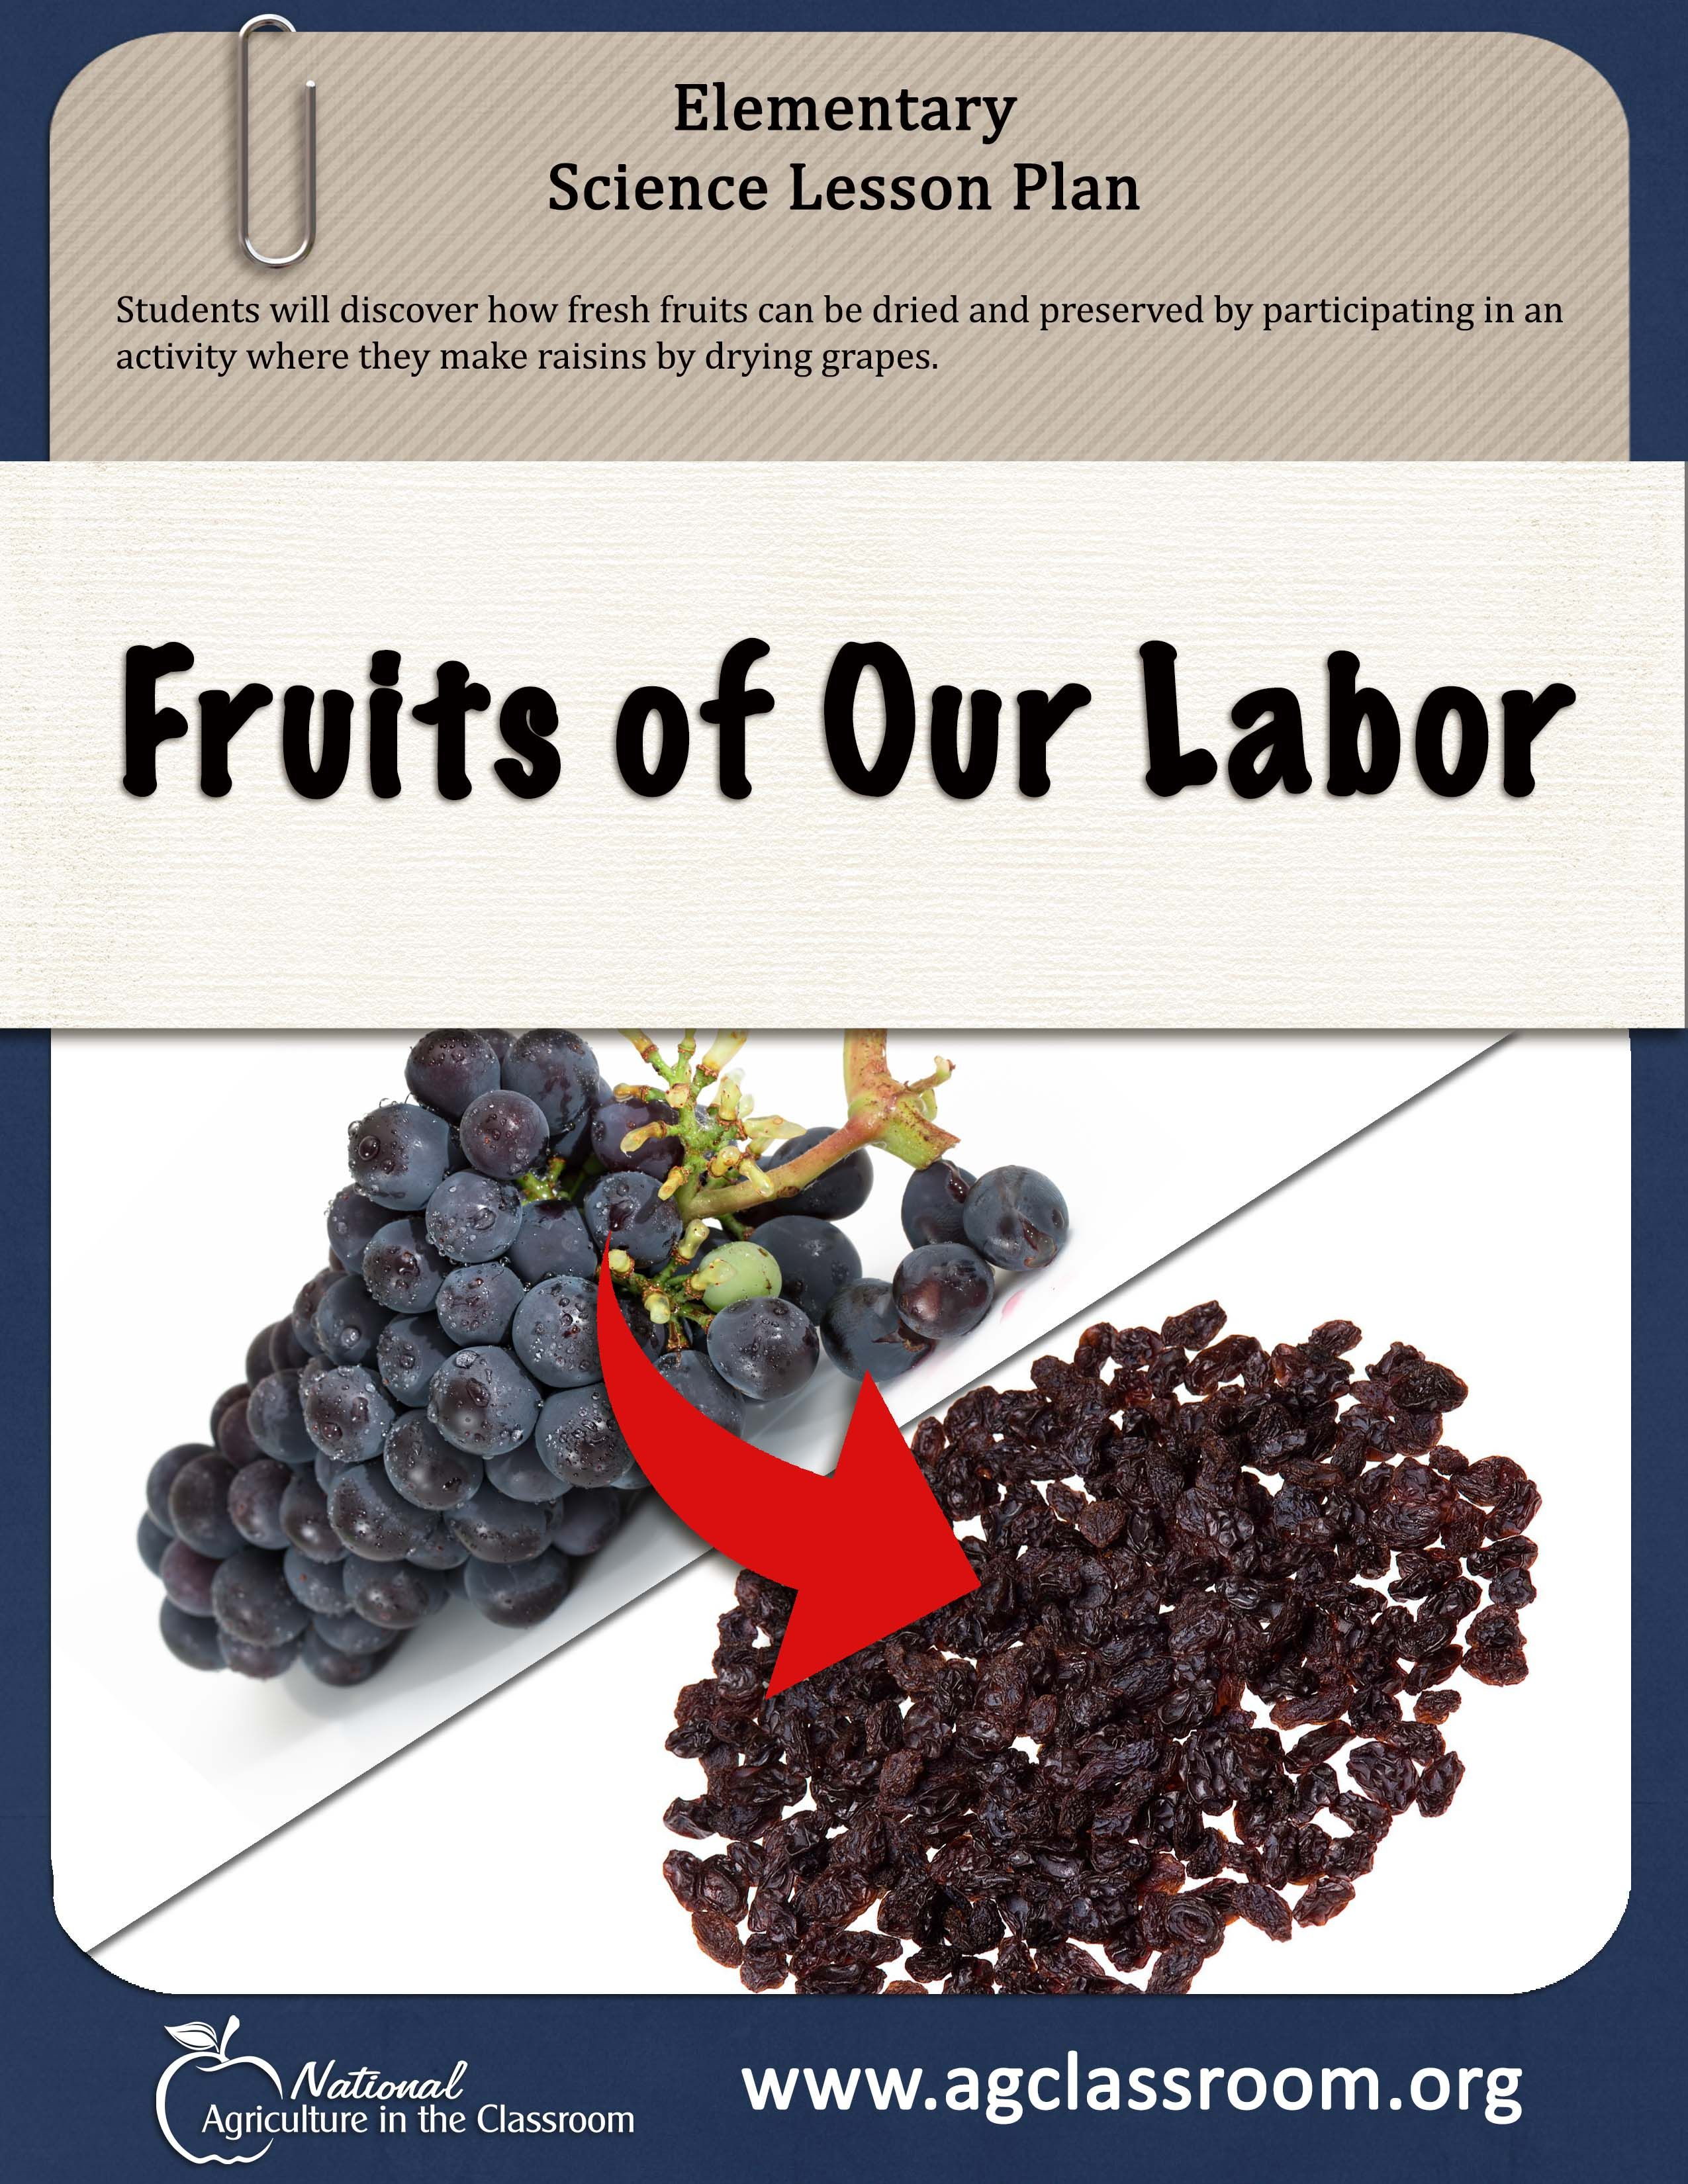 Lesson plan teaching how fresh fruits can be dried and